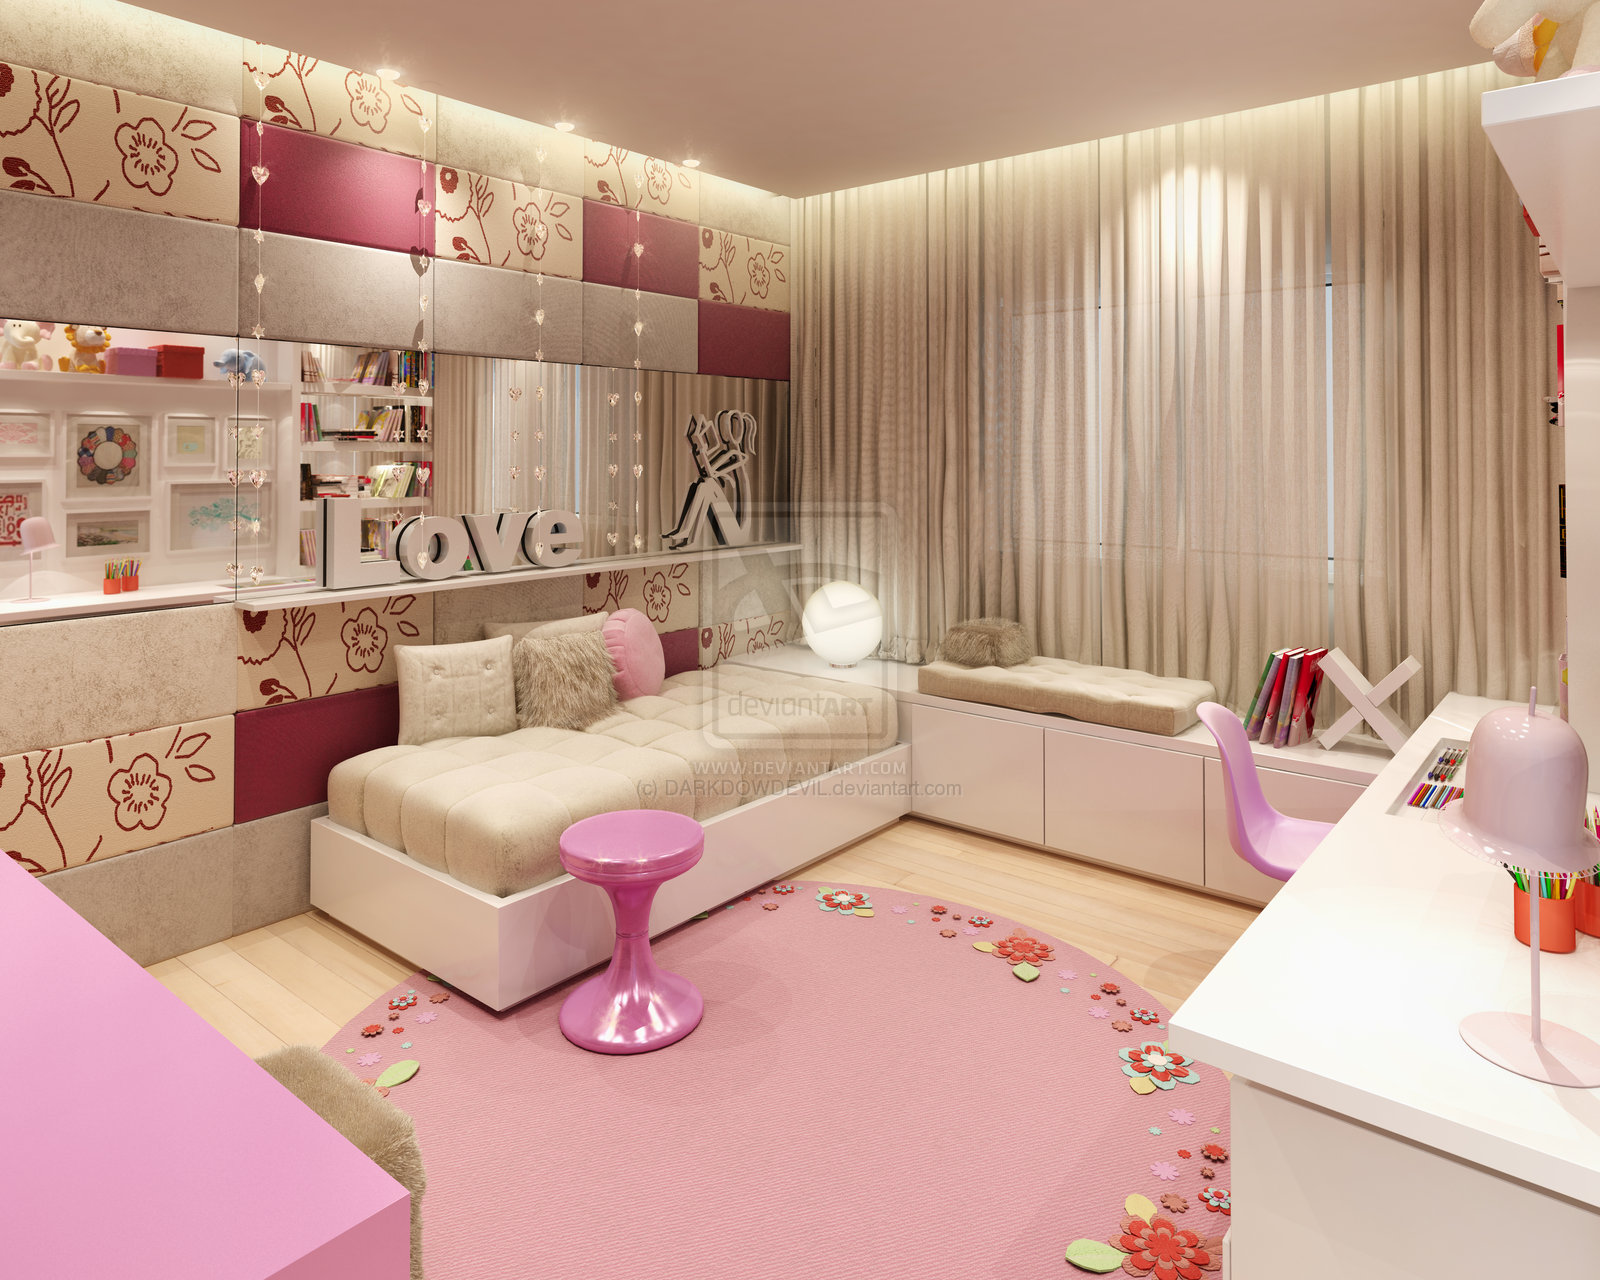 Home design interior monnie best girl bedrooms in the world - Teenage girl bedroom decorating ideas ...